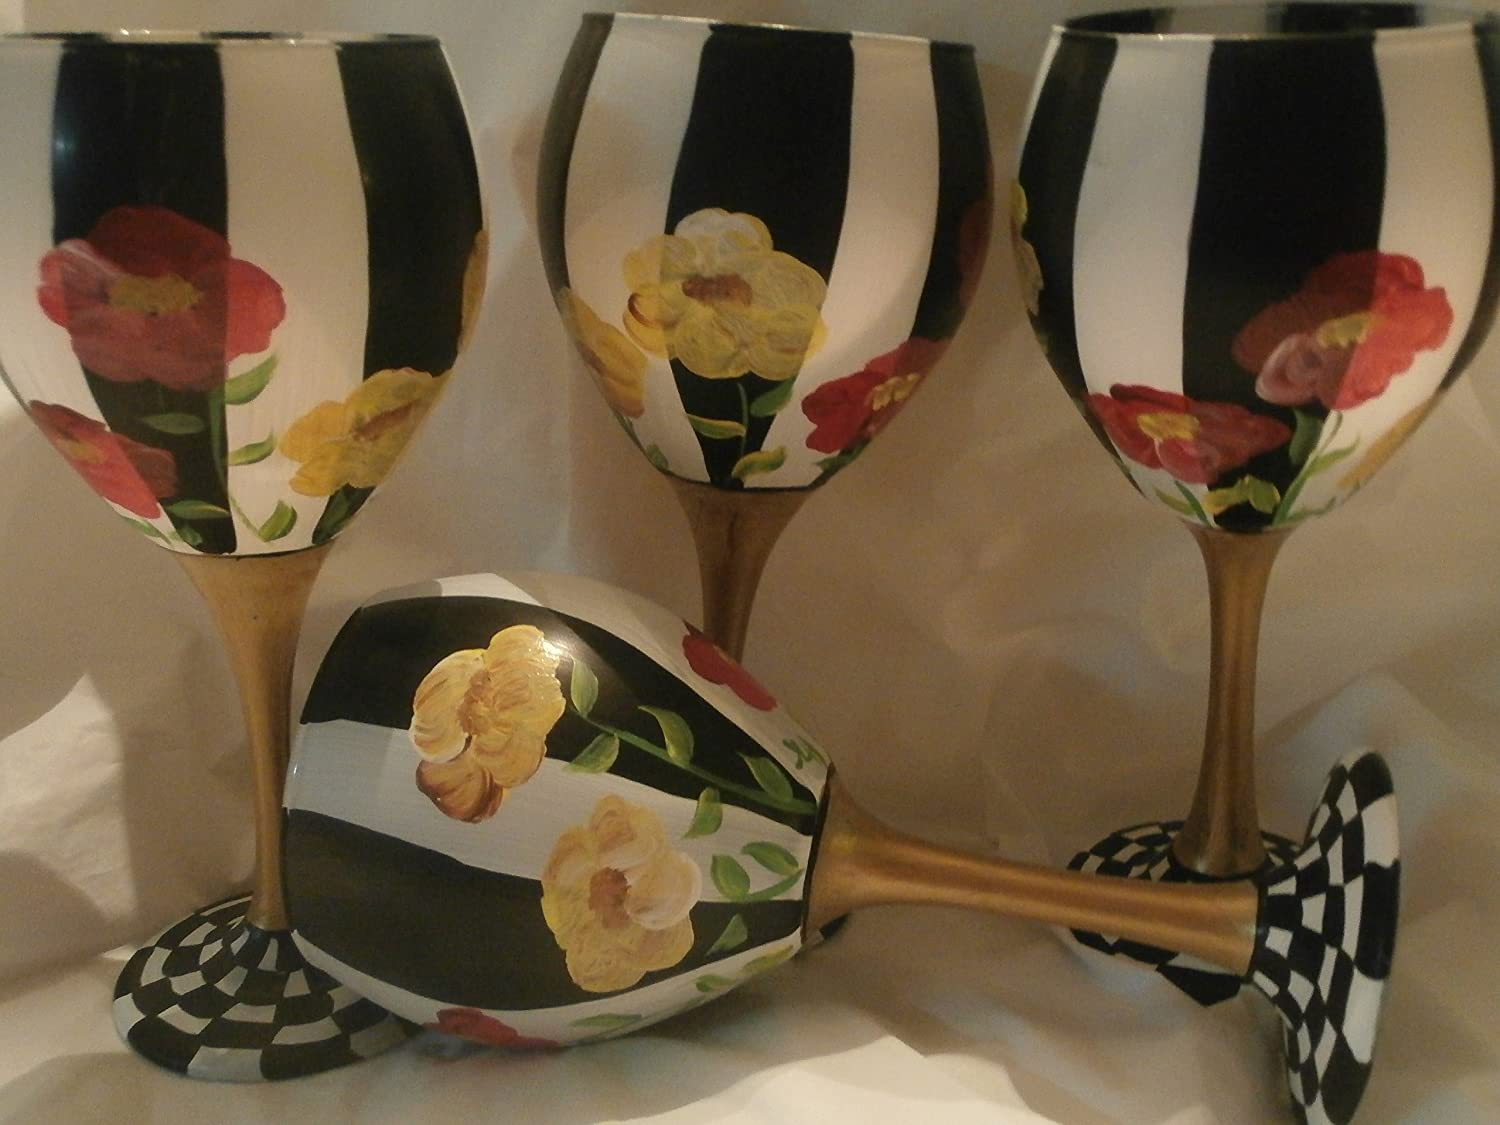 20 ounces each. usa Great set Painted with black and white stripes Set of 4 goblets. This set is so pretty Great gift Hand painted Red and Yellow poppies Gold Stem and checked base